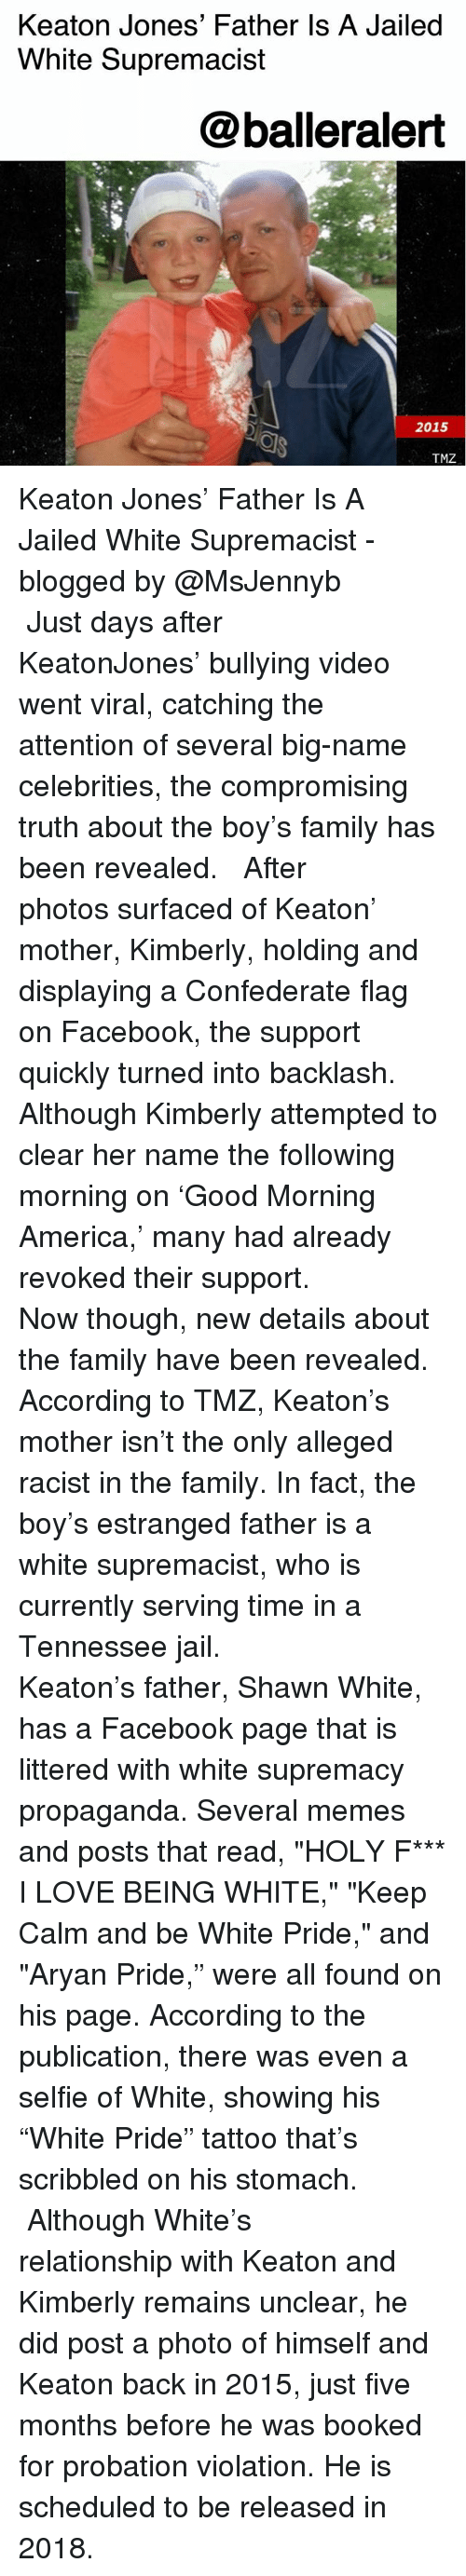 """America, Confederate Flag, and Facebook: Keaton Jones' Father Is A Jailed  White Supremacist  @balleralert  2015  TMZ Keaton Jones' Father Is A Jailed White Supremacist - blogged by @MsJennyb ⠀⠀⠀⠀⠀⠀⠀ ⠀⠀⠀⠀⠀⠀⠀ Just days after KeatonJones' bullying video went viral, catching the attention of several big-name celebrities, the compromising truth about the boy's family has been revealed. ⠀⠀⠀⠀⠀⠀⠀ ⠀⠀⠀⠀⠀⠀⠀ After photos surfaced of Keaton' mother, Kimberly, holding and displaying a Confederate flag on Facebook, the support quickly turned into backlash. Although Kimberly attempted to clear her name the following morning on 'Good Morning America,' many had already revoked their support. ⠀⠀⠀⠀⠀⠀⠀ ⠀⠀⠀⠀⠀⠀⠀ Now though, new details about the family have been revealed. According to TMZ, Keaton's mother isn't the only alleged racist in the family. In fact, the boy's estranged father is a white supremacist, who is currently serving time in a Tennessee jail. ⠀⠀⠀⠀⠀⠀⠀ ⠀⠀⠀⠀⠀⠀⠀ Keaton's father, Shawn White, has a Facebook page that is littered with white supremacy propaganda. Several memes and posts that read, """"HOLY F*** I LOVE BEING WHITE,"""" """"Keep Calm and be White Pride,"""" and """"Aryan Pride,"""" were all found on his page. According to the publication, there was even a selfie of White, showing his """"White Pride"""" tattoo that's scribbled on his stomach. ⠀⠀⠀⠀⠀⠀⠀ ⠀⠀⠀⠀⠀⠀⠀ Although White's relationship with Keaton and Kimberly remains unclear, he did post a photo of himself and Keaton back in 2015, just five months before he was booked for probation violation. He is scheduled to be released in 2018."""